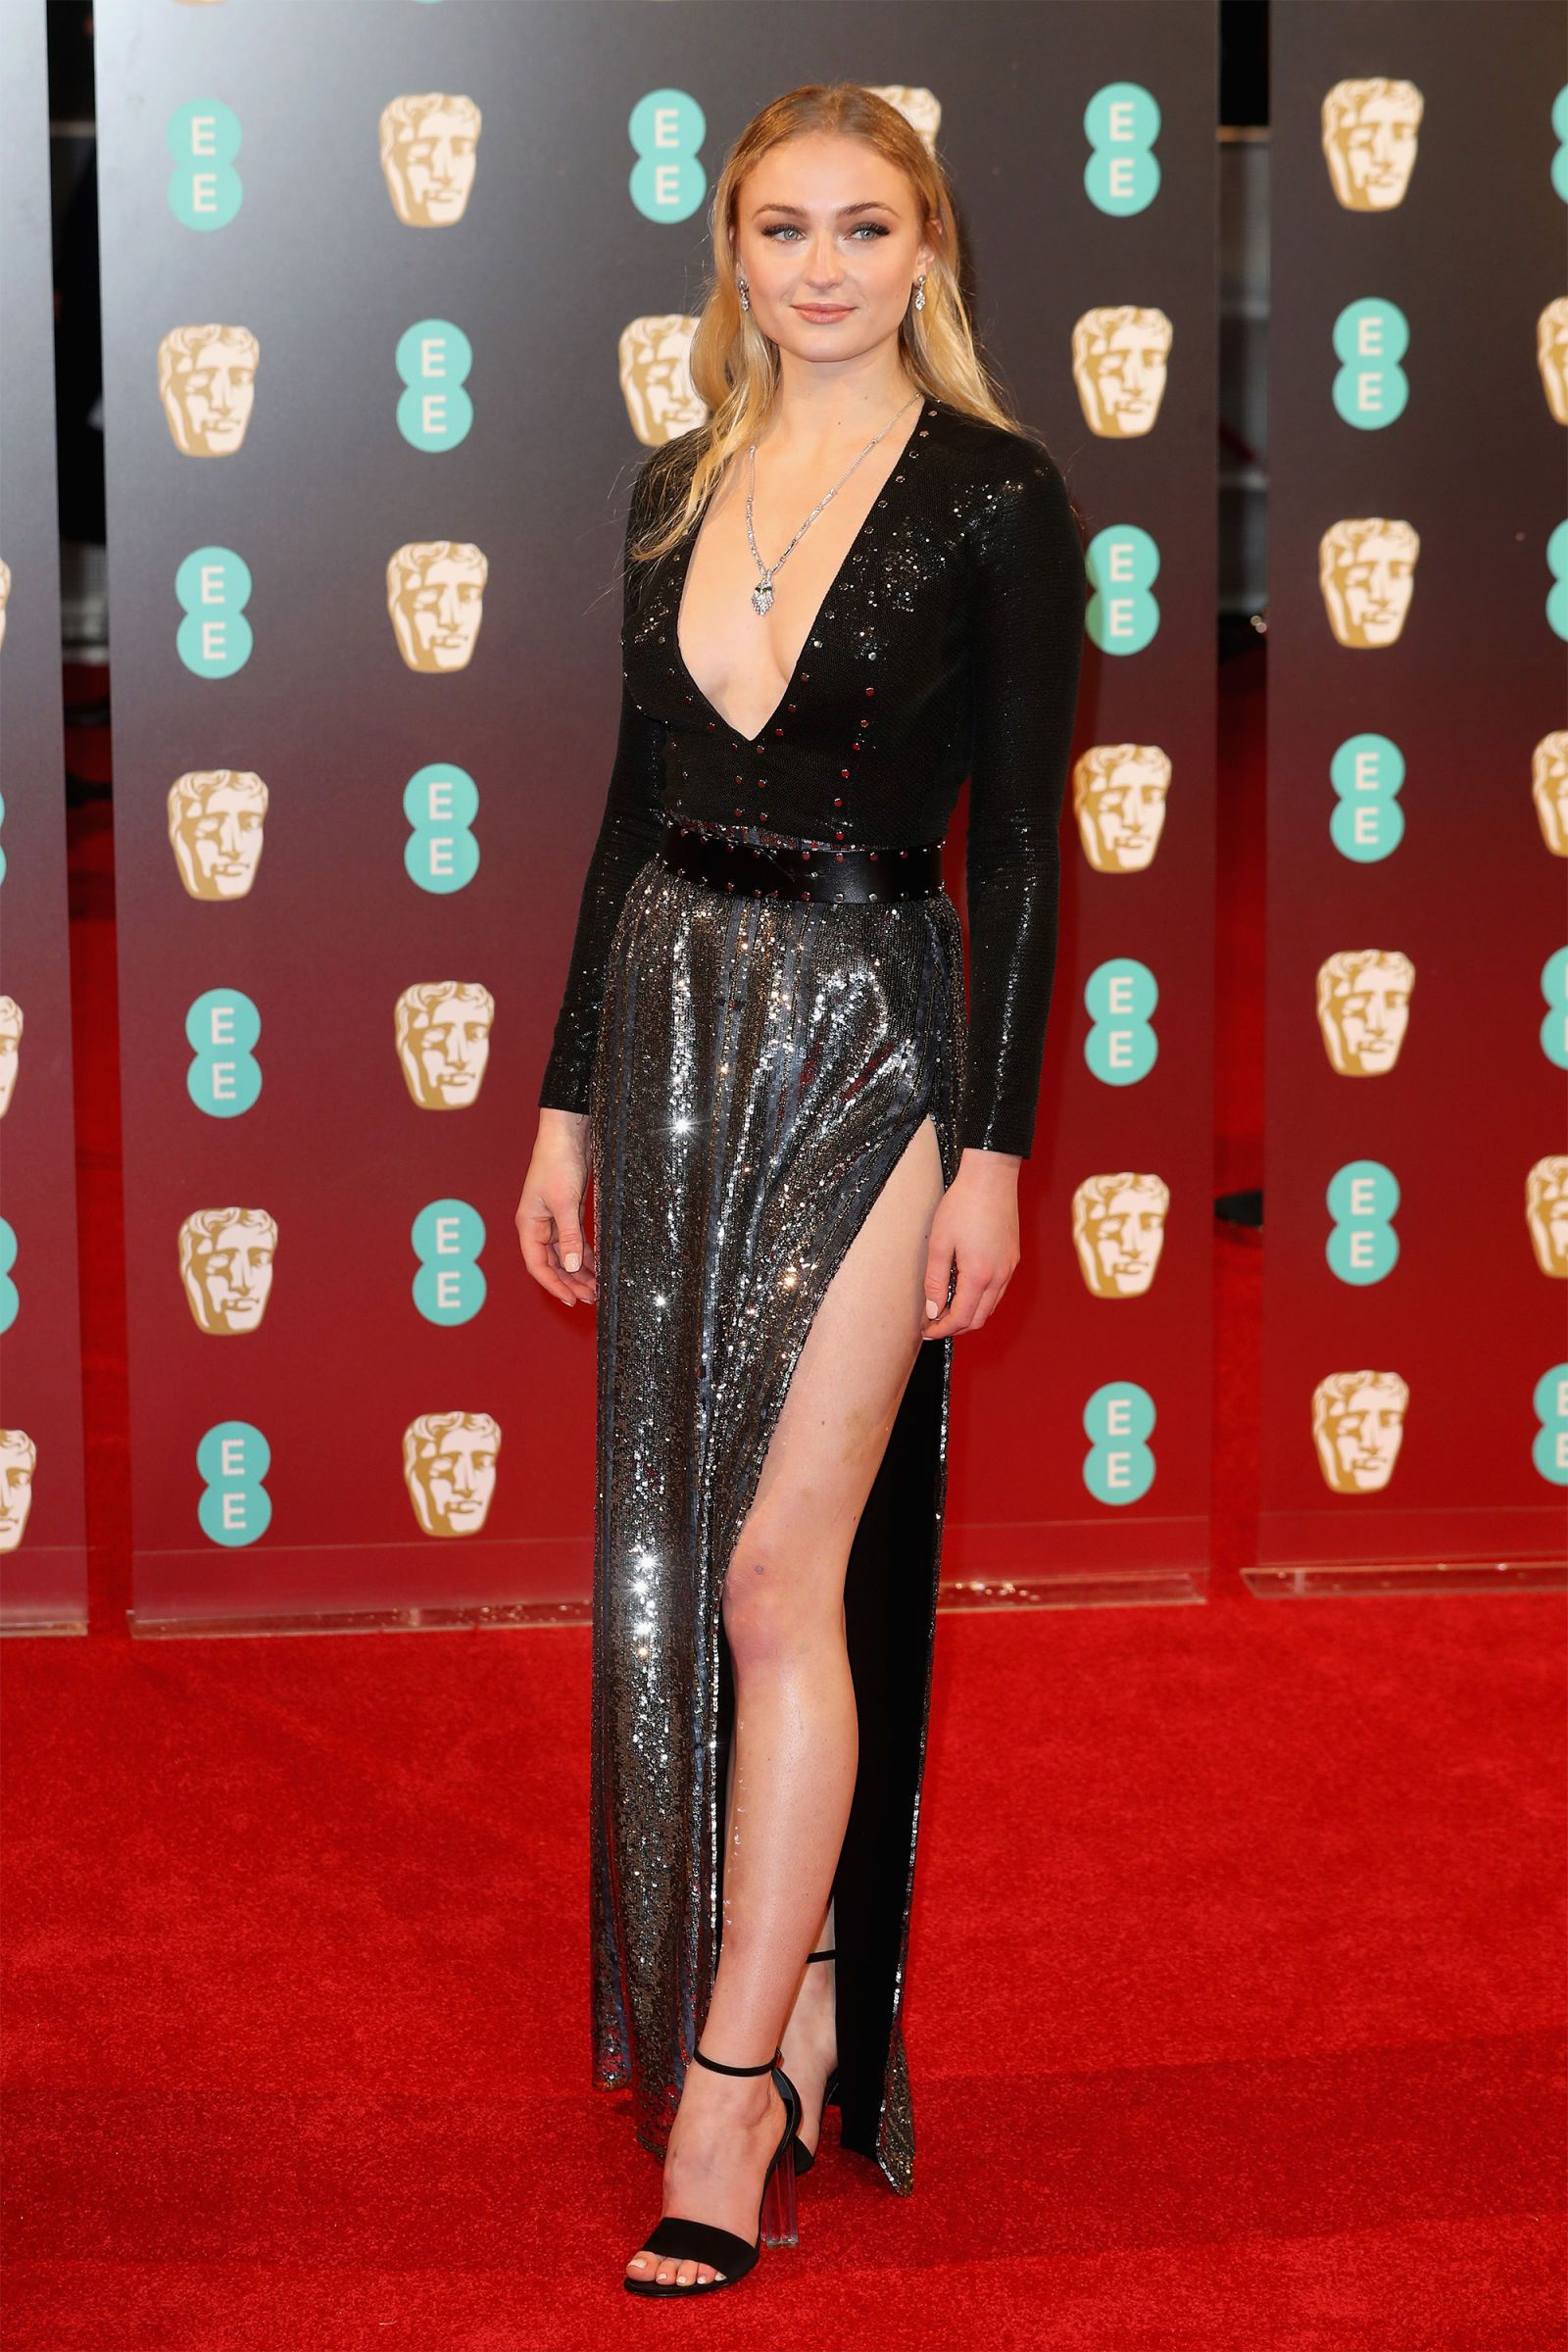 30 Fantastic Sophie Turner Red Carpet Photographs That